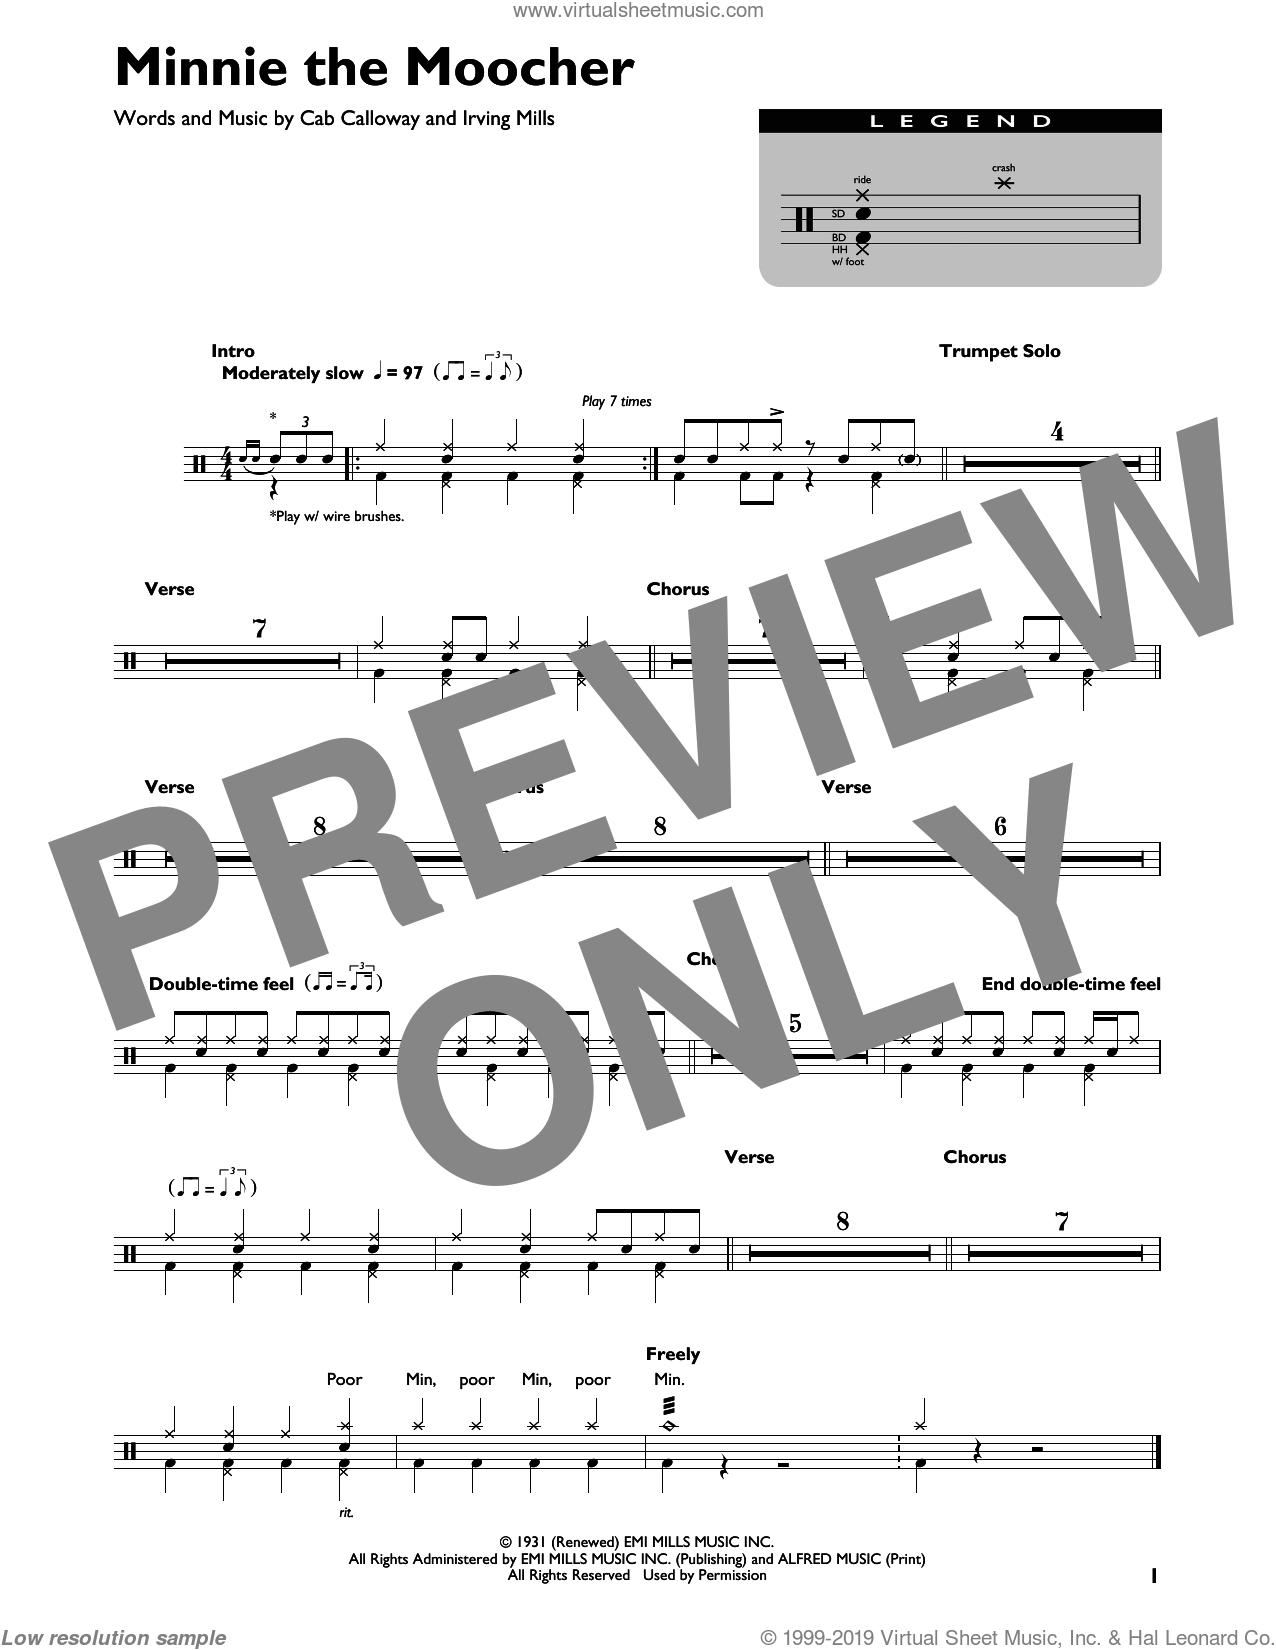 Minnie The Moocher sheet music for drums by Cab Calloway and Irving Mills, intermediate skill level